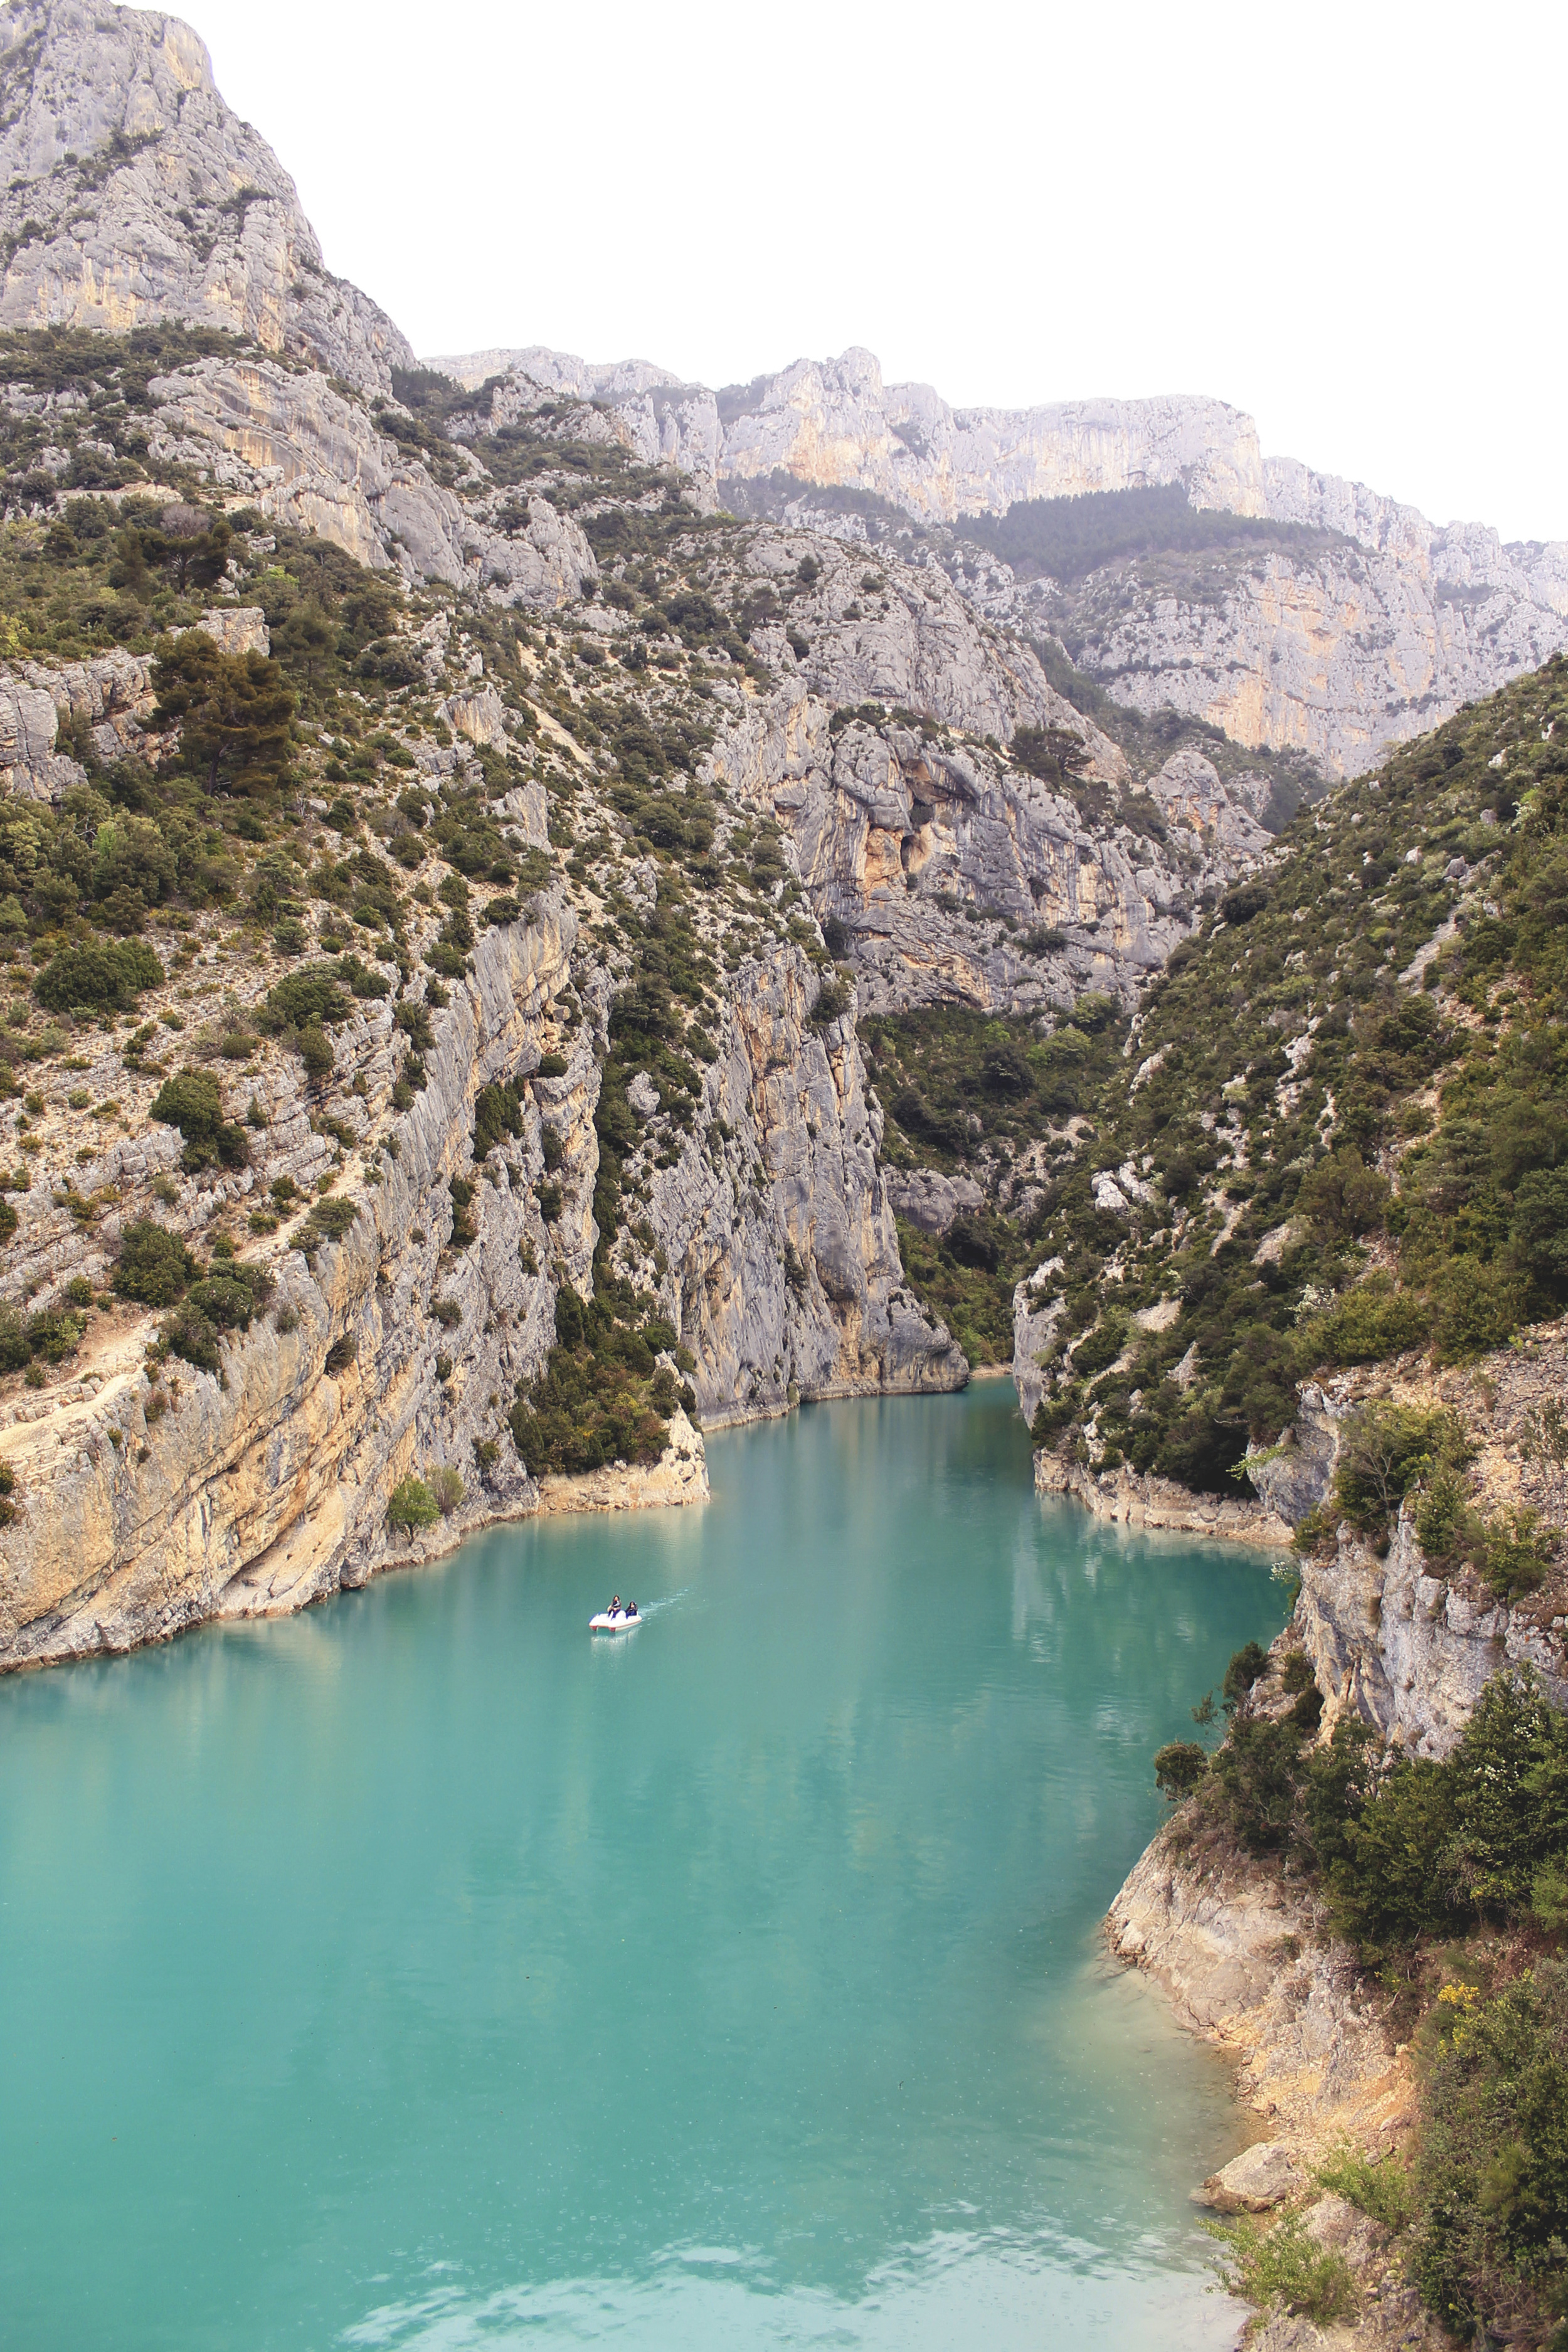 canyon river france south mountains boat turquoise water